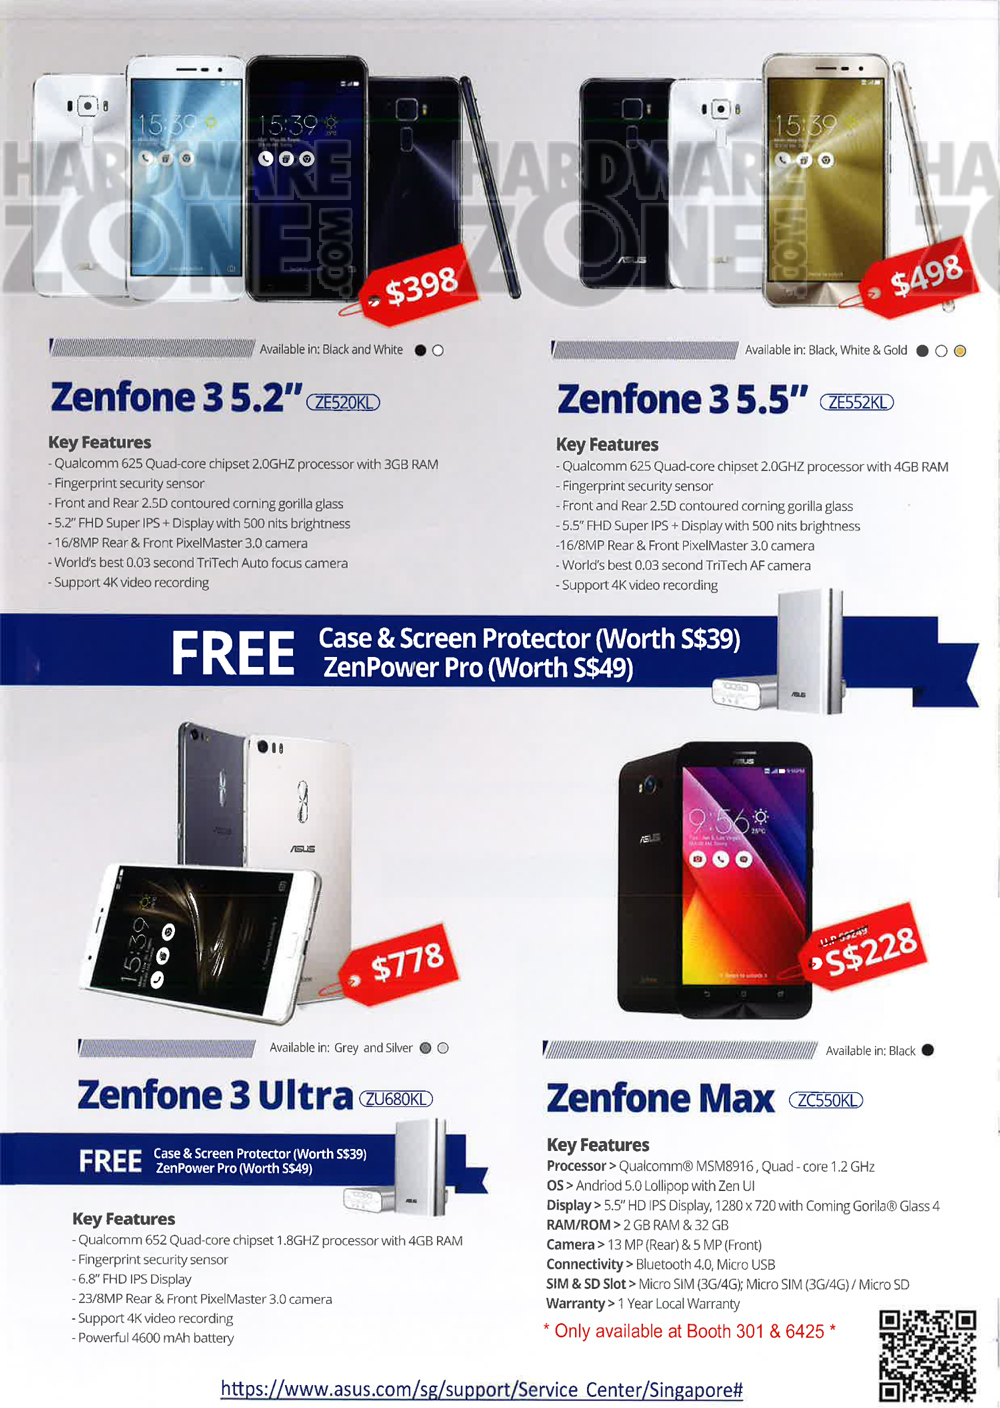 Asus gaming desktops amp monitors brochures from cee show 2016 singapore - Asus Zenfone Page 2